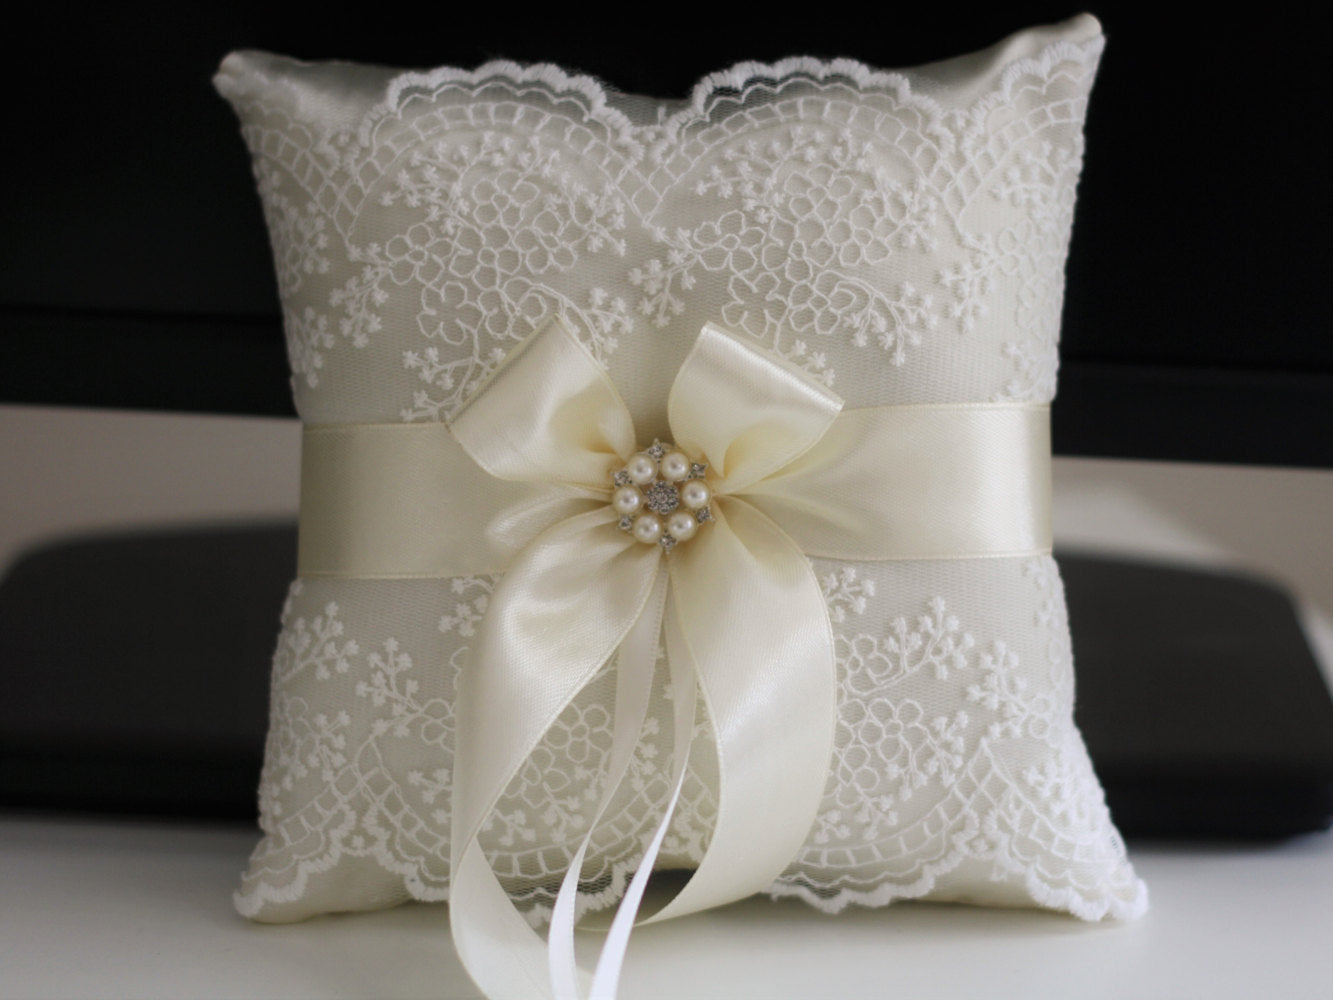 satin ceremony store mic ring pillow bearer product ivory wedding baskets ribbon shipment heart hot sell pillows about flower rhinestones